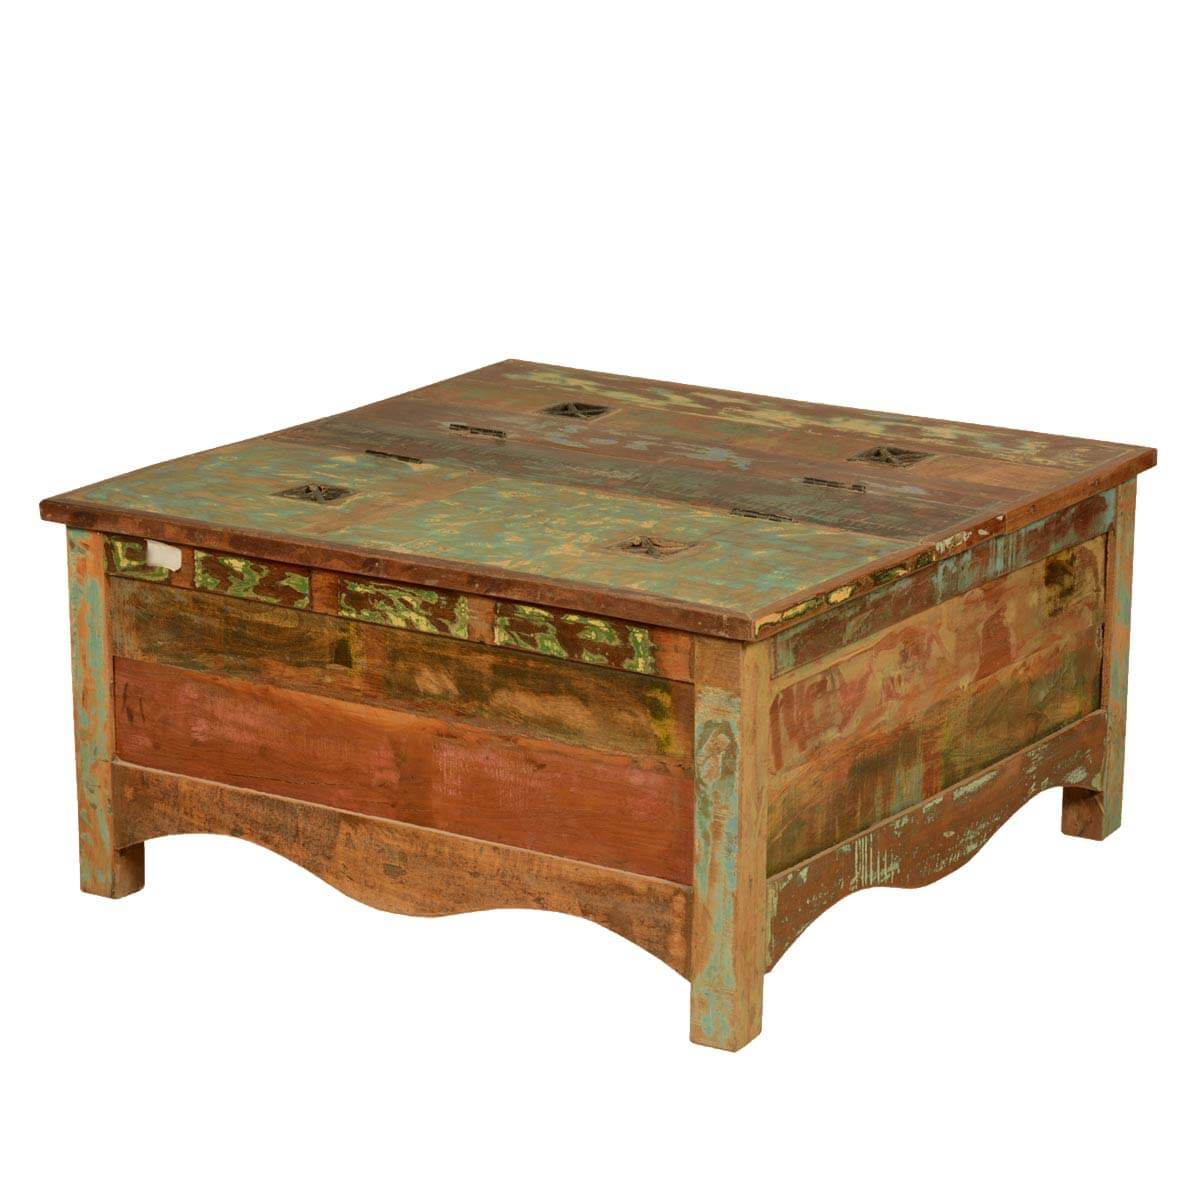 Rustic reclaimed wood 35 5 square double top coffee table chest Rustic wooden coffee tables